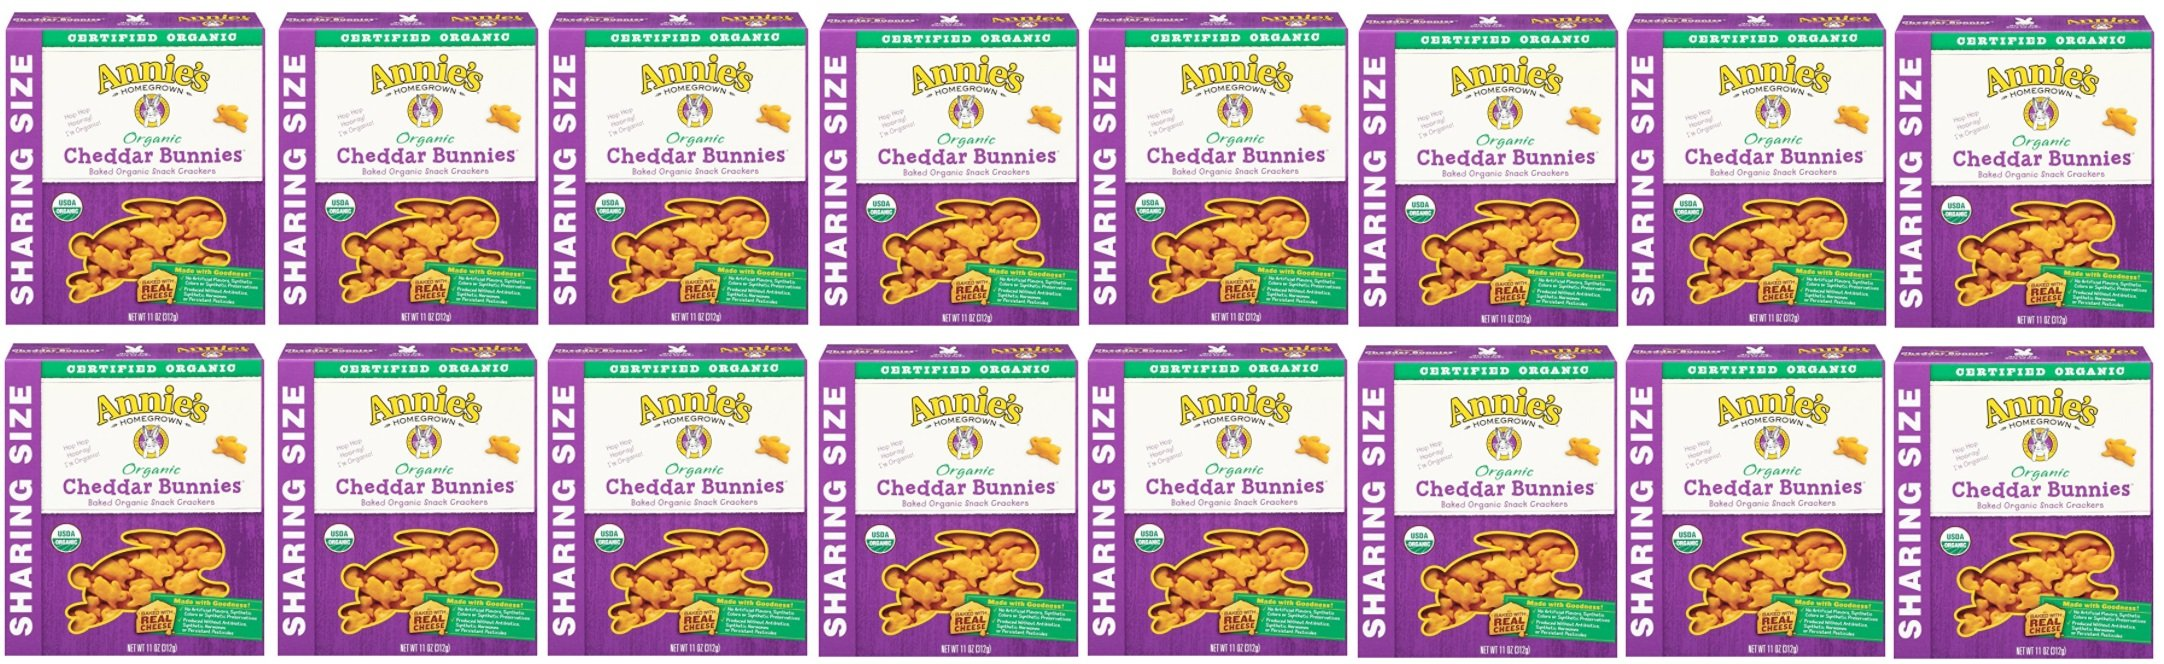 Annie's Organic Cheddar Bunnies, Baked Snack Crackers, 11 oz Box (Pack of 16)